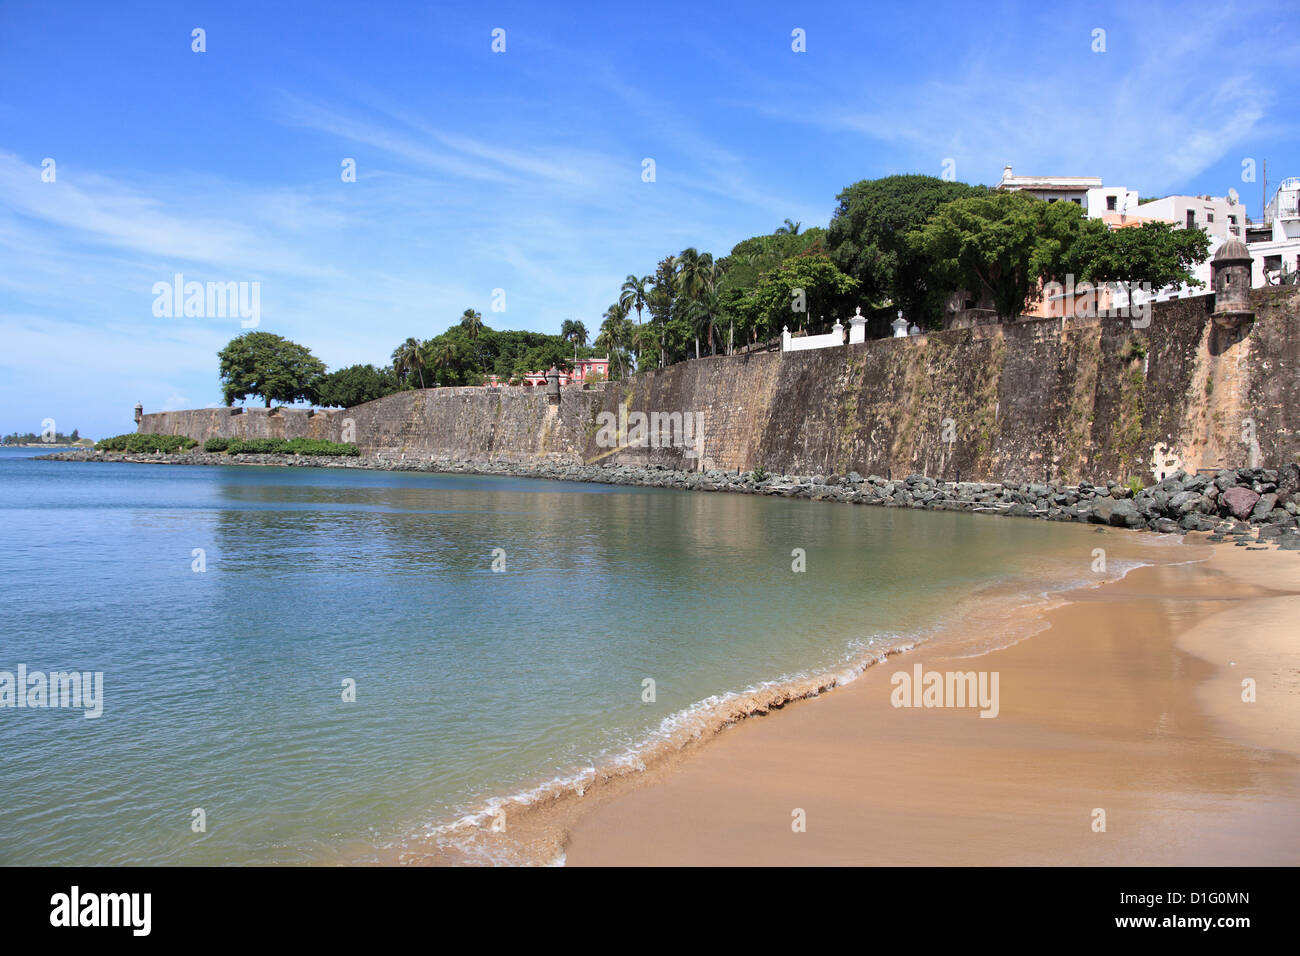 Old City Wall, Old San Juan, San Juan, Puerto Rico, West Indies, Caribbean, United States of America, Central America - Stock Image